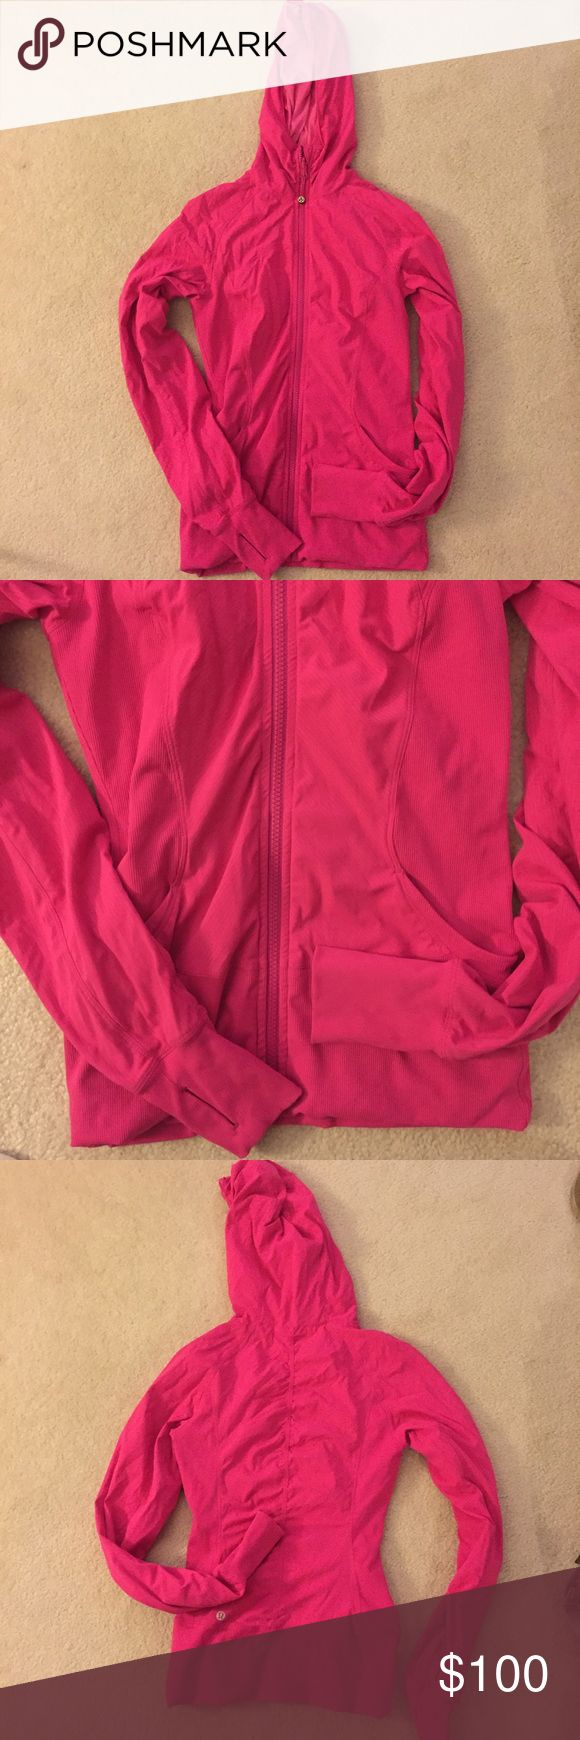 Lululemon Pink Zip Up Great condition! Worn twice. Just a bit too small for me! lululemon athletica Jackets & Coats